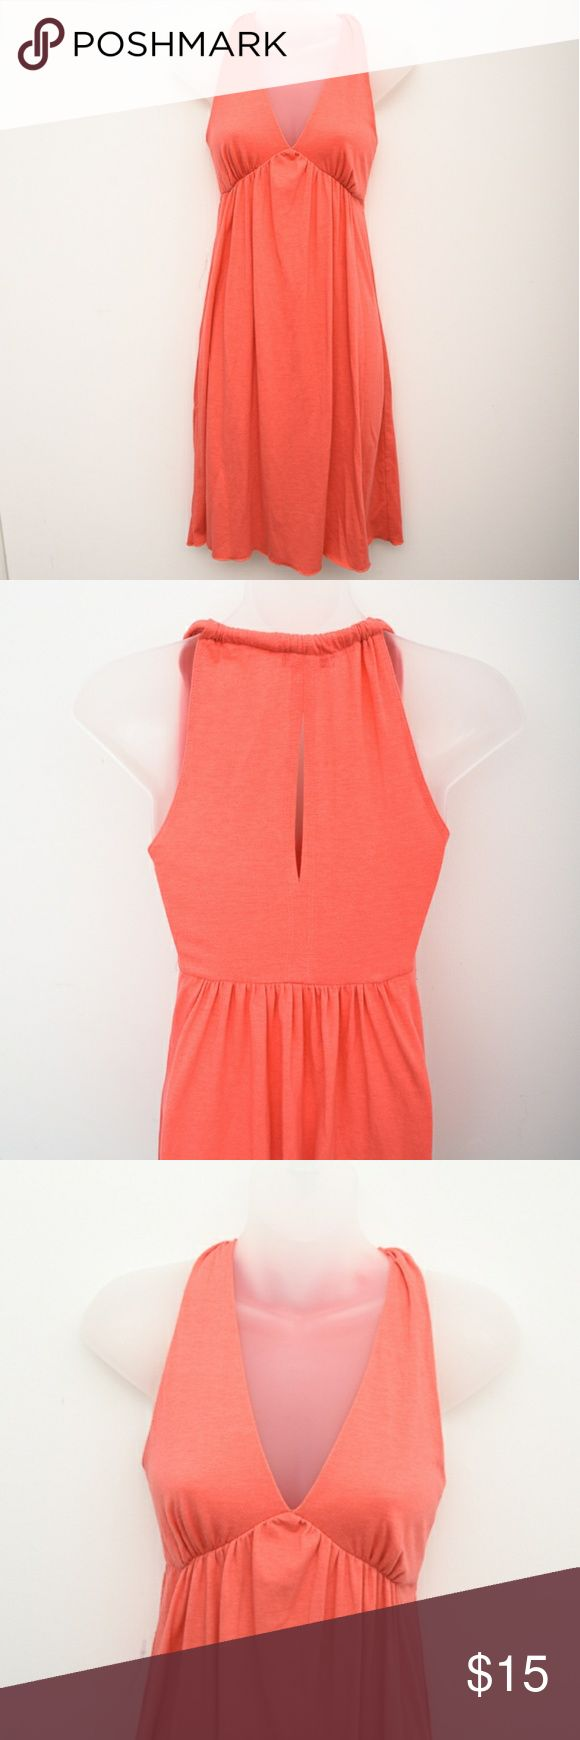 Salmon coral pink sundress * This dress as been altered to fit a smaller bust i.e. A/B cup.  Light knit material with a halter like top, plunging neckline, and keyhole back.  This can easily be layered with a neutral color crop sweater for fall and spring. #31-25 Dresses Mini